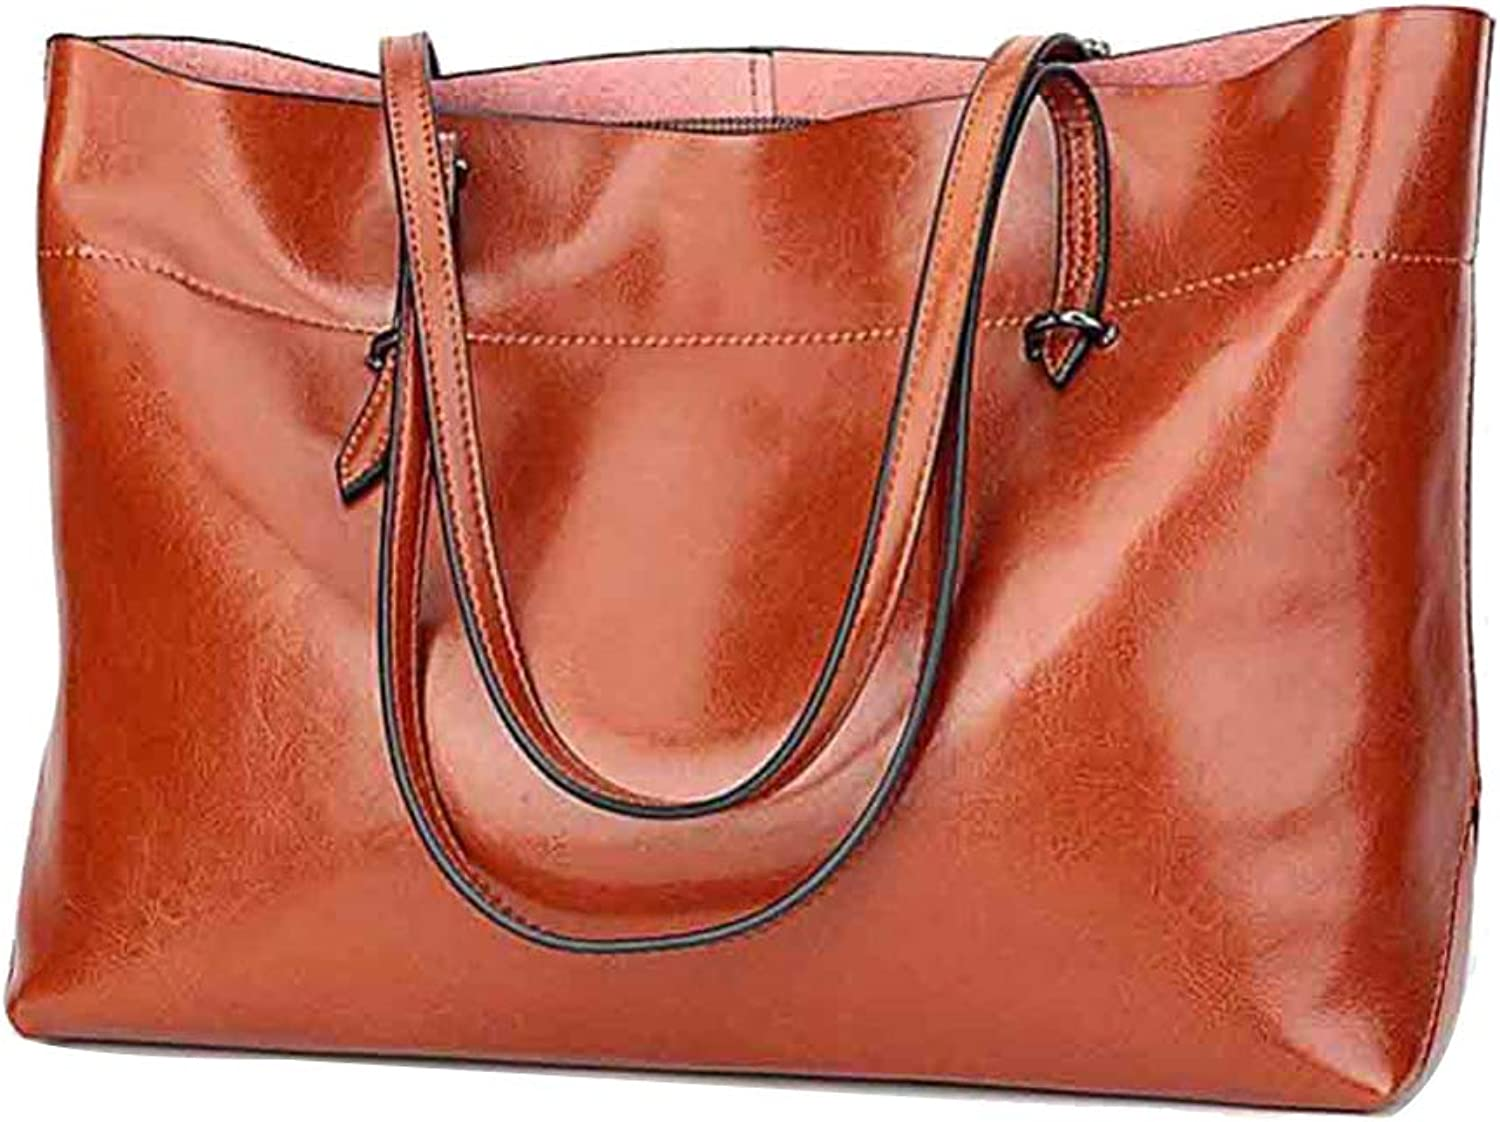 Fashionable Soft Leather Female Bag, Big Bag Ladies Shoulder Bag Fashion Elegant Handbag - Suitable for Work Shopping Travel,Available in Two Sizes